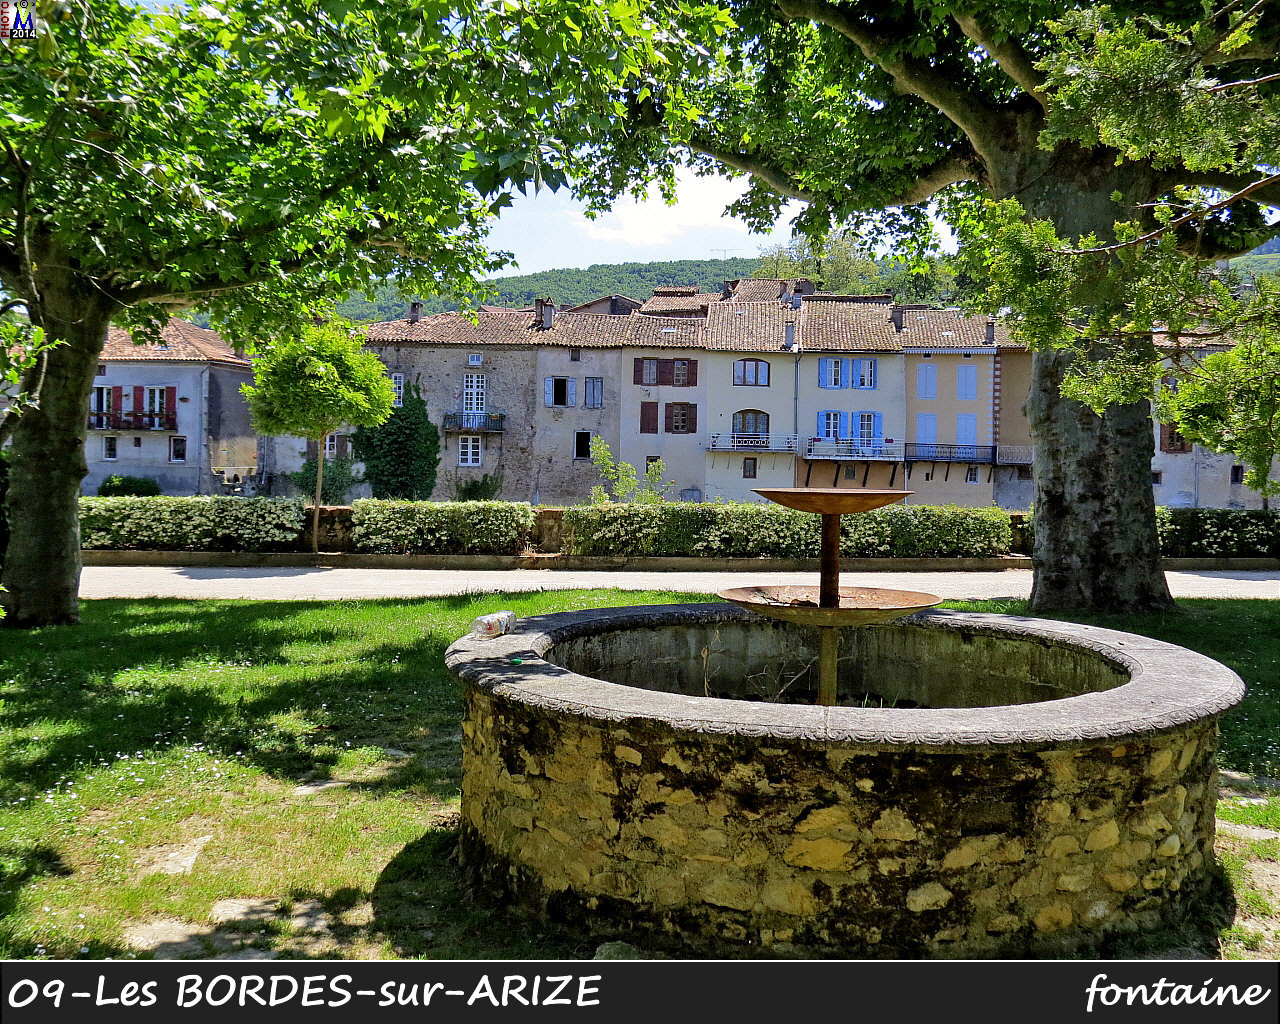 09BORDES-ARIZE_fontaine_100.jpg